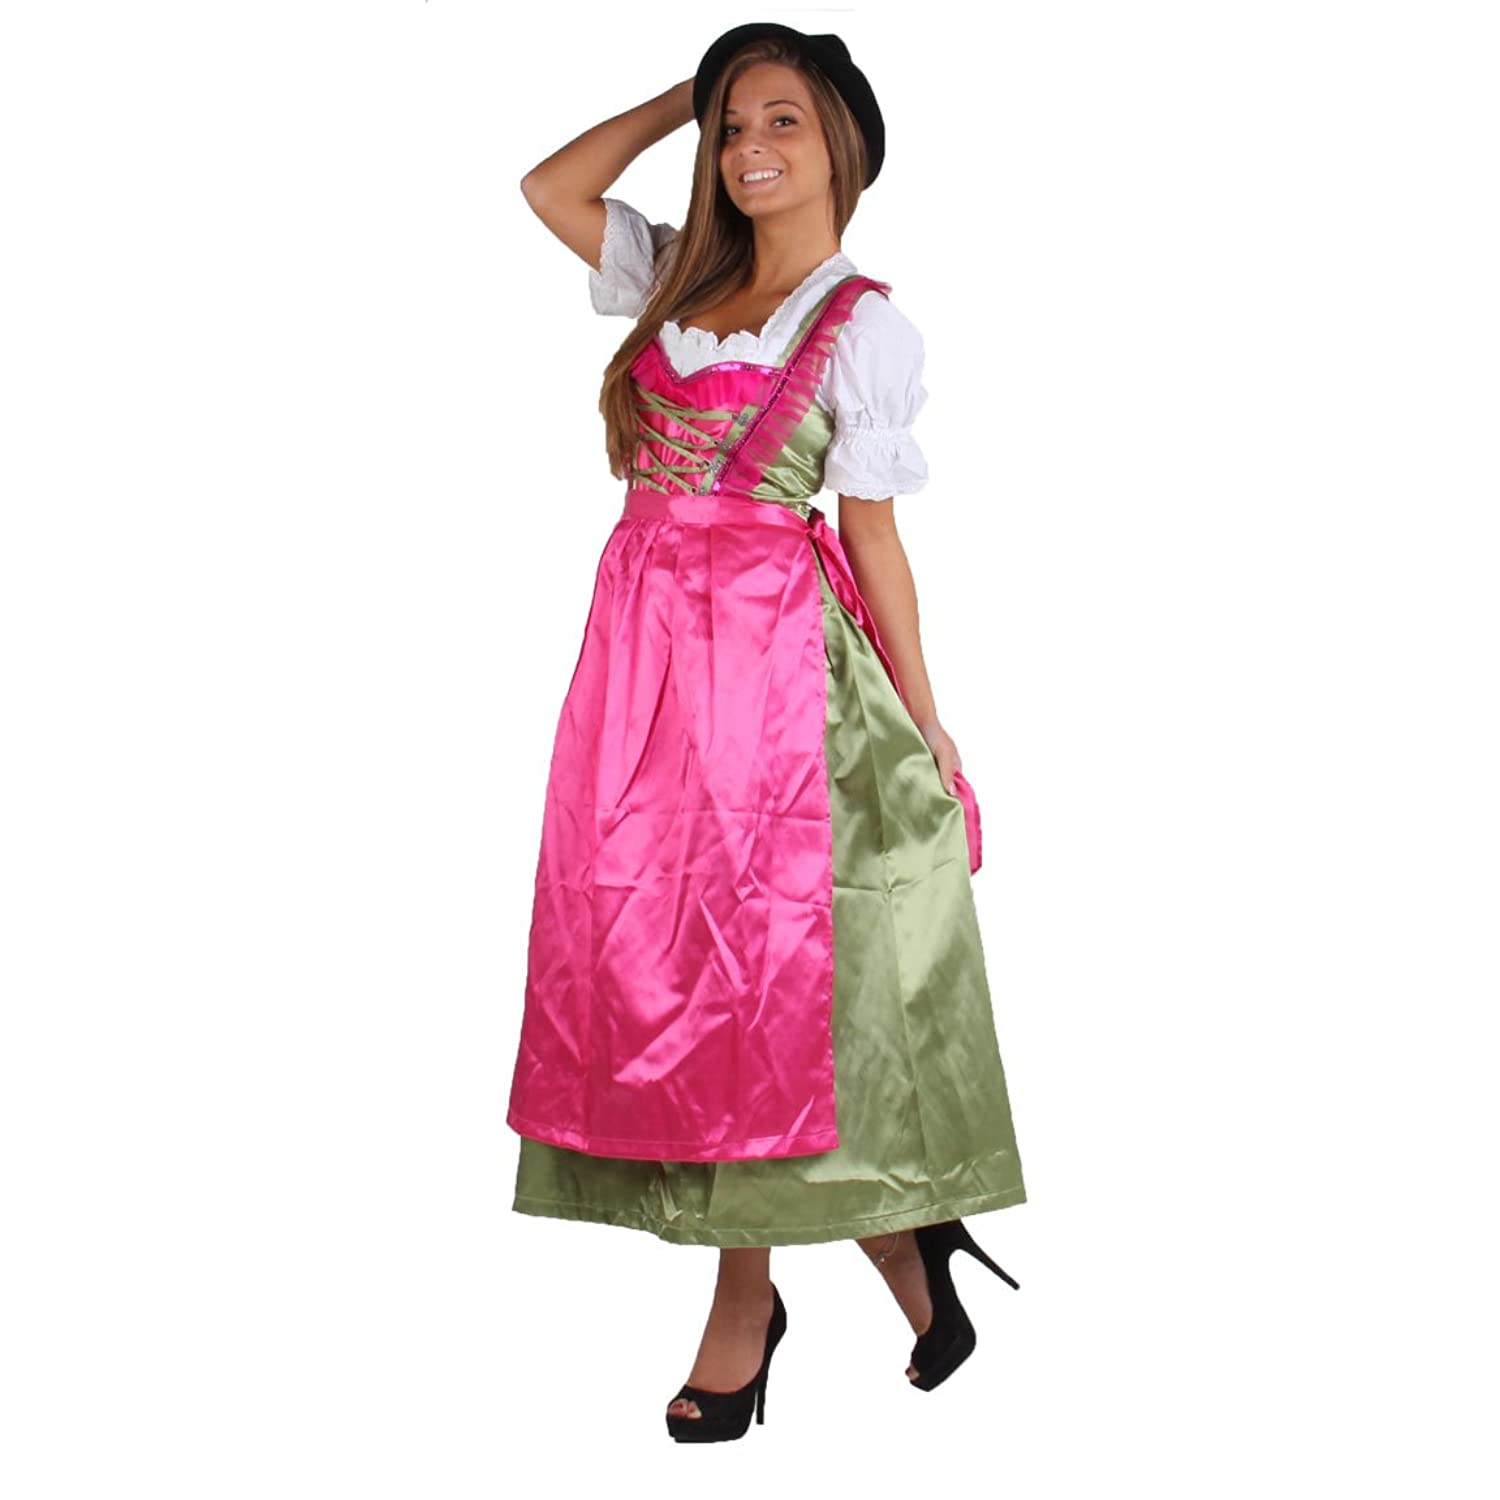 BLACK FOREST Damen Dirndl Trachtenkleid 3 in 1 P8 Pink Green